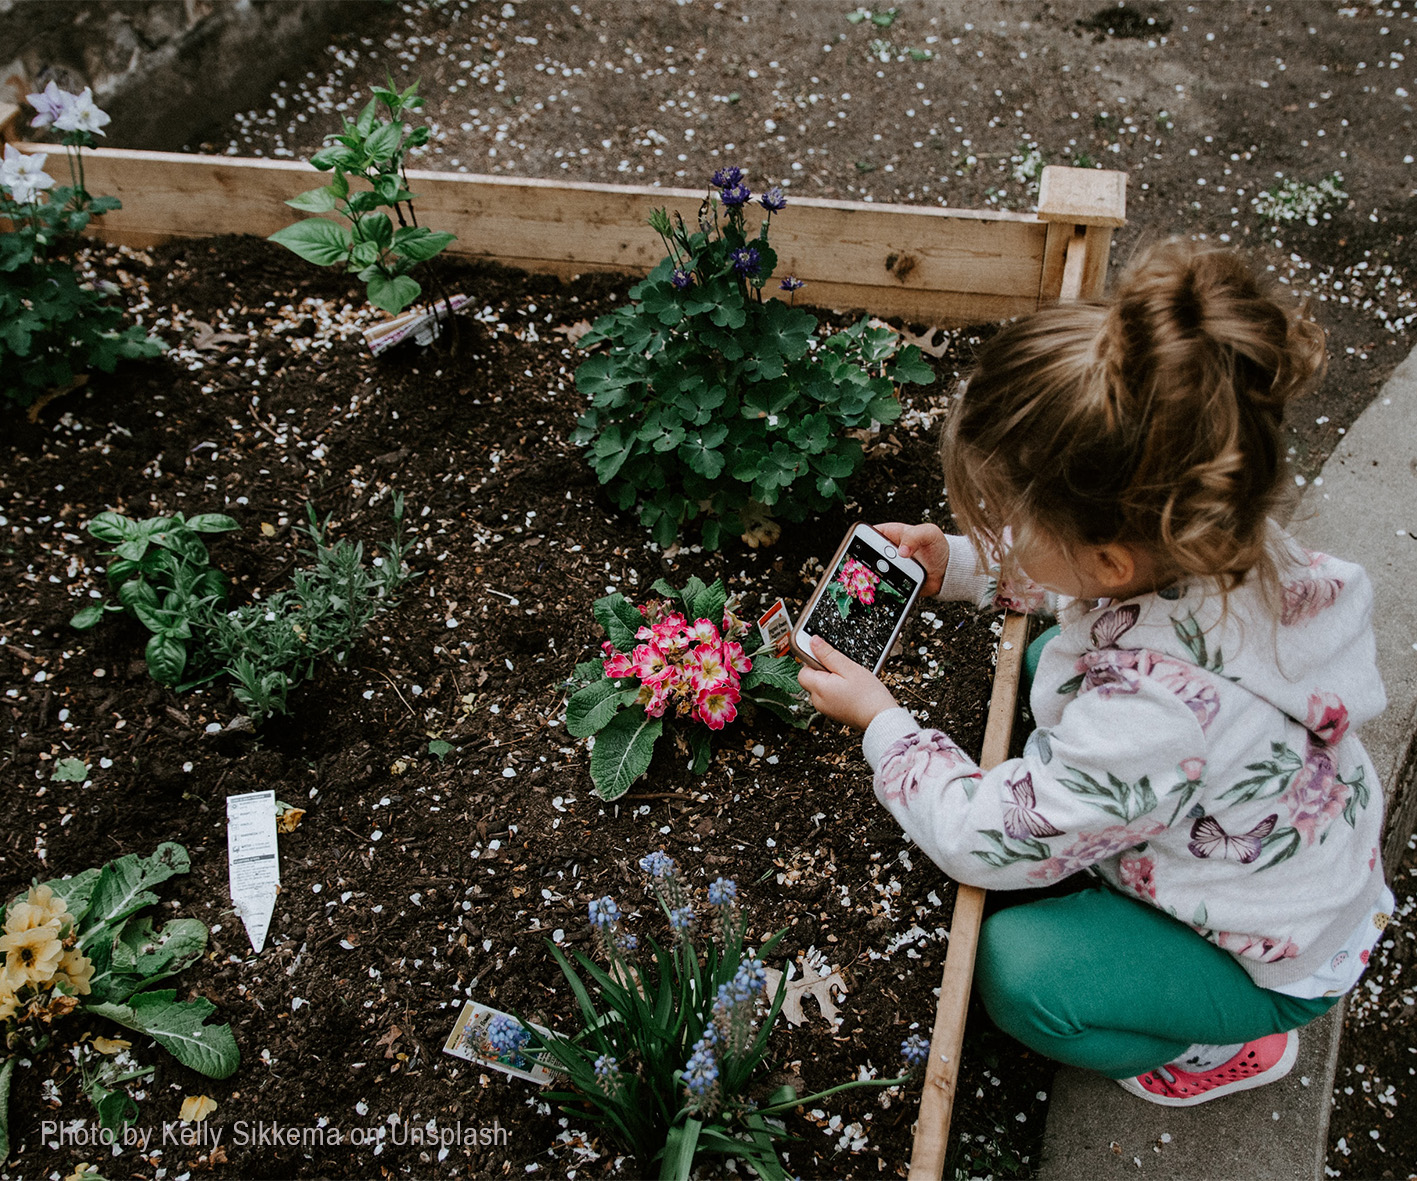 Gardening-Is-Childs-Play - Gardening-Is-Child's-Play